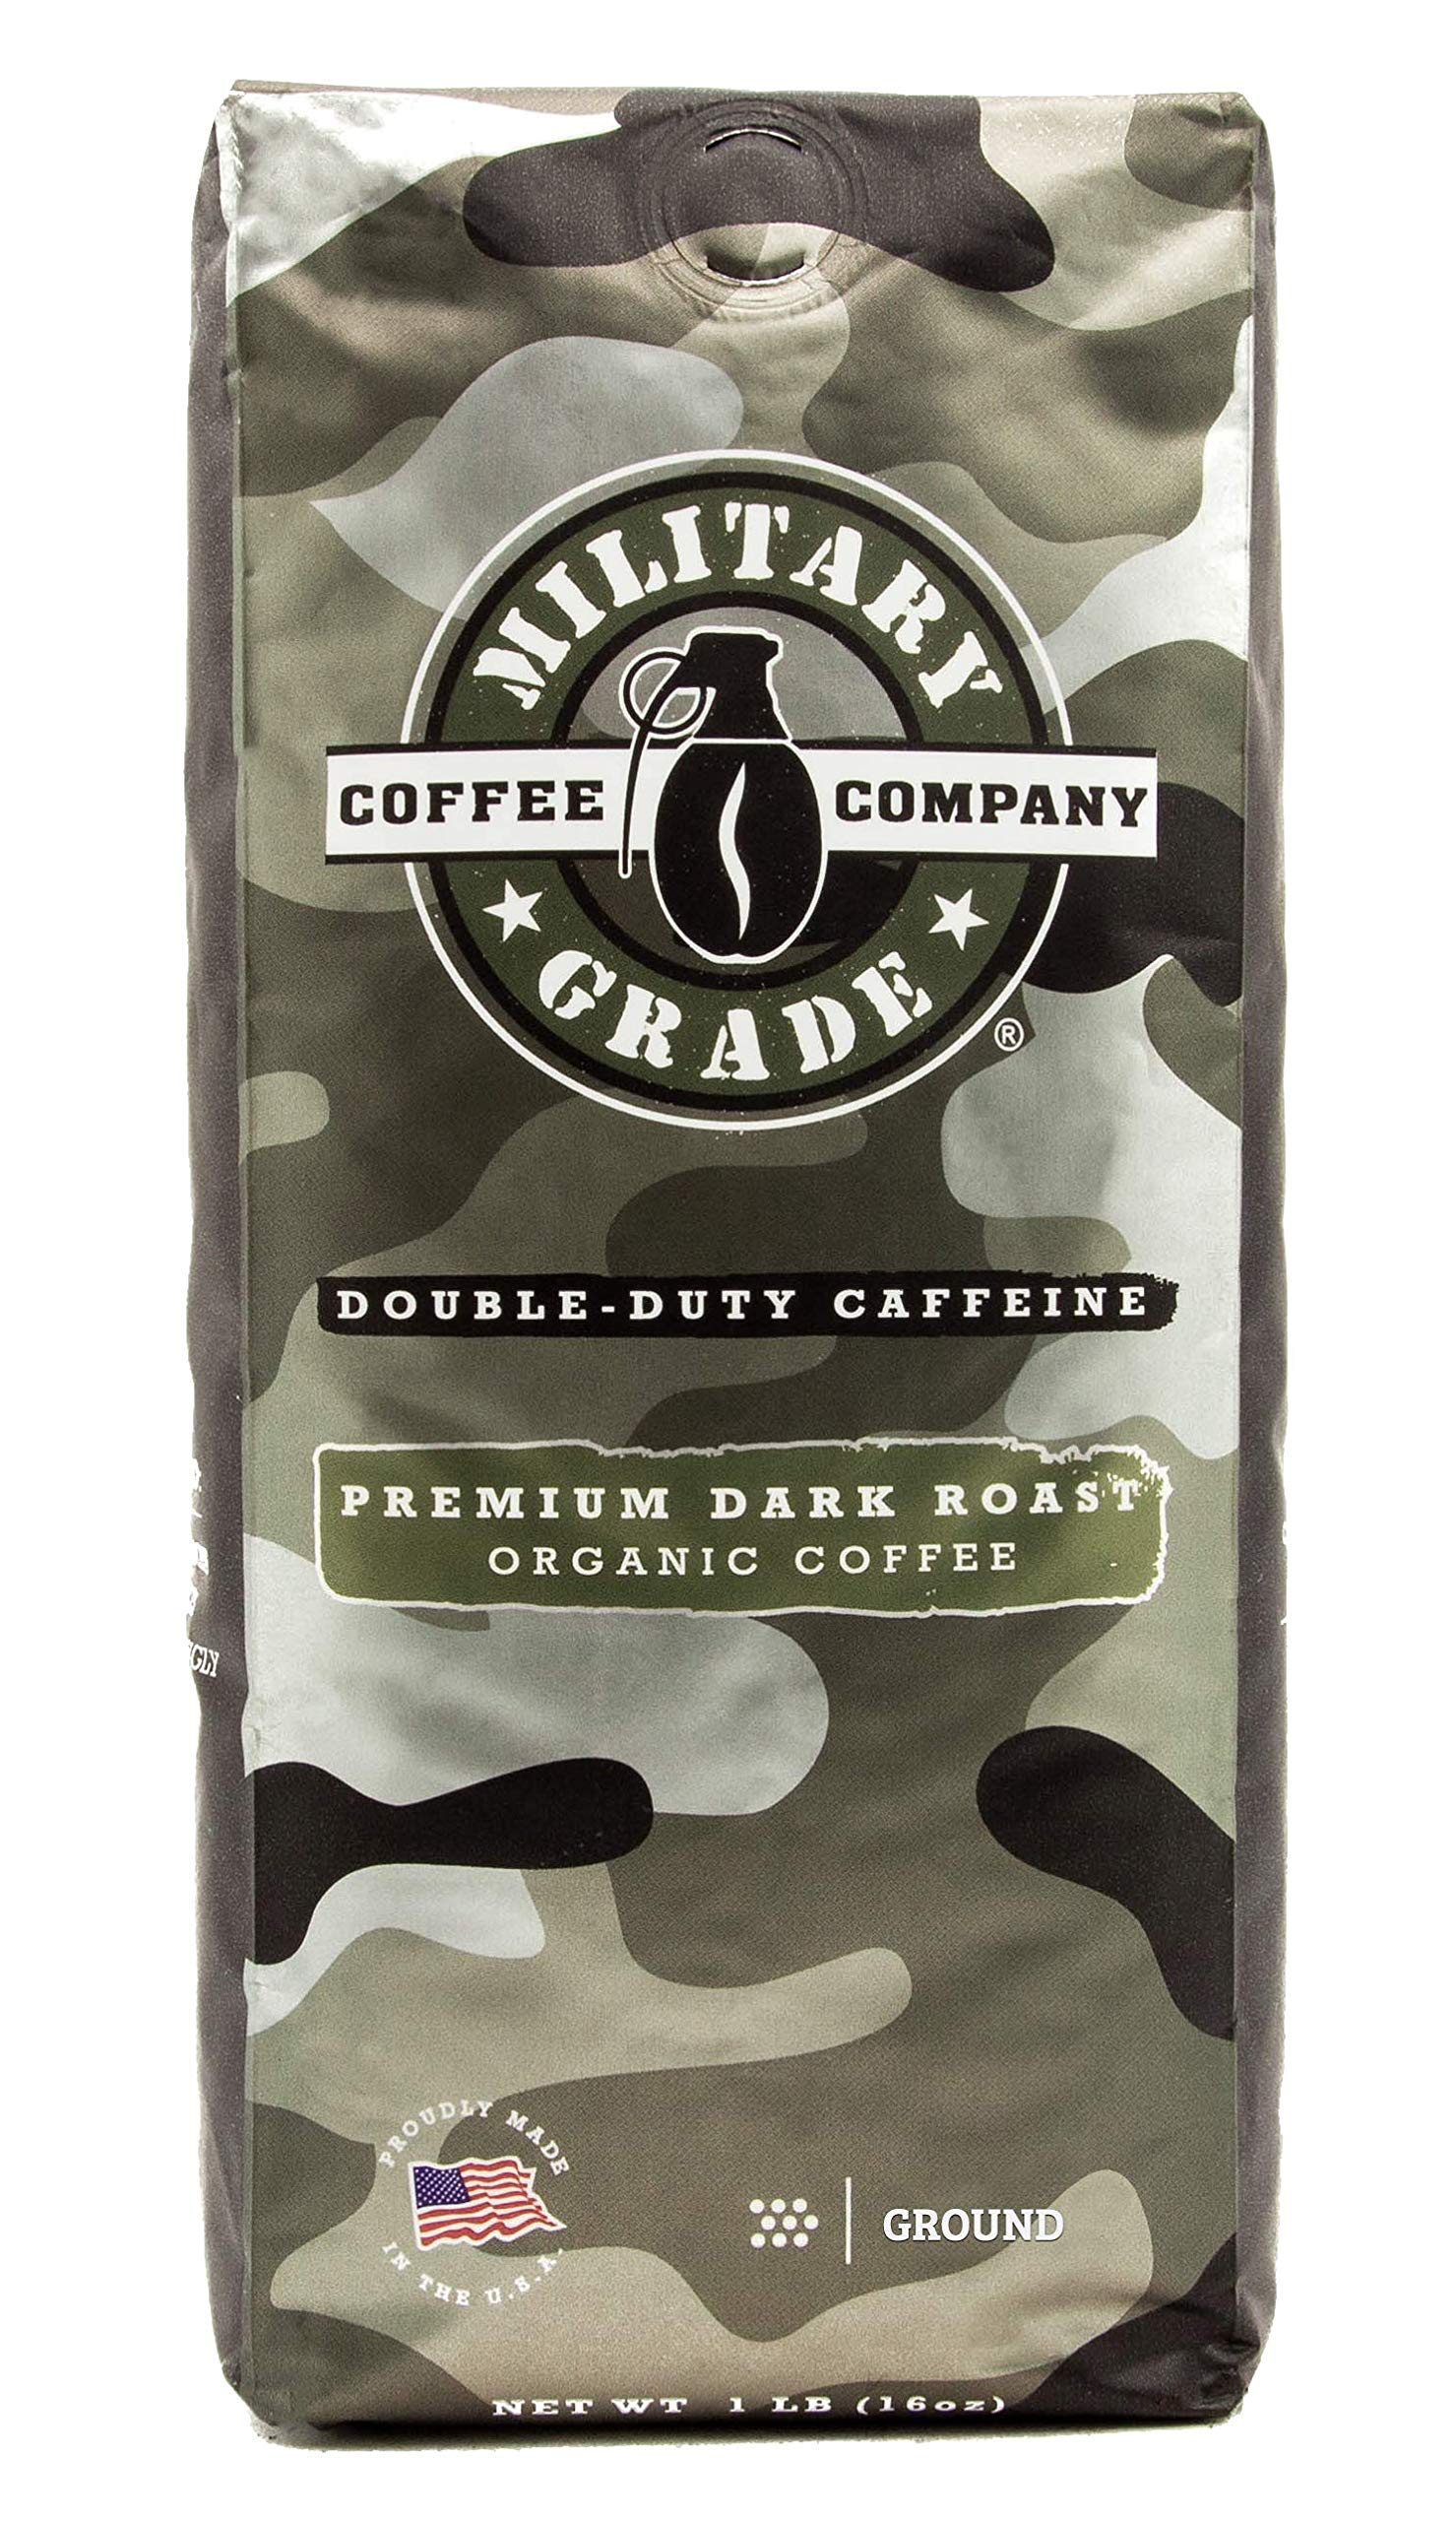 Military Grade Ground Coffee, The Strongest Coffee On The Planet, Organic - 16 Oz. Bag (1 BAG) by Military Grade Coffee Company